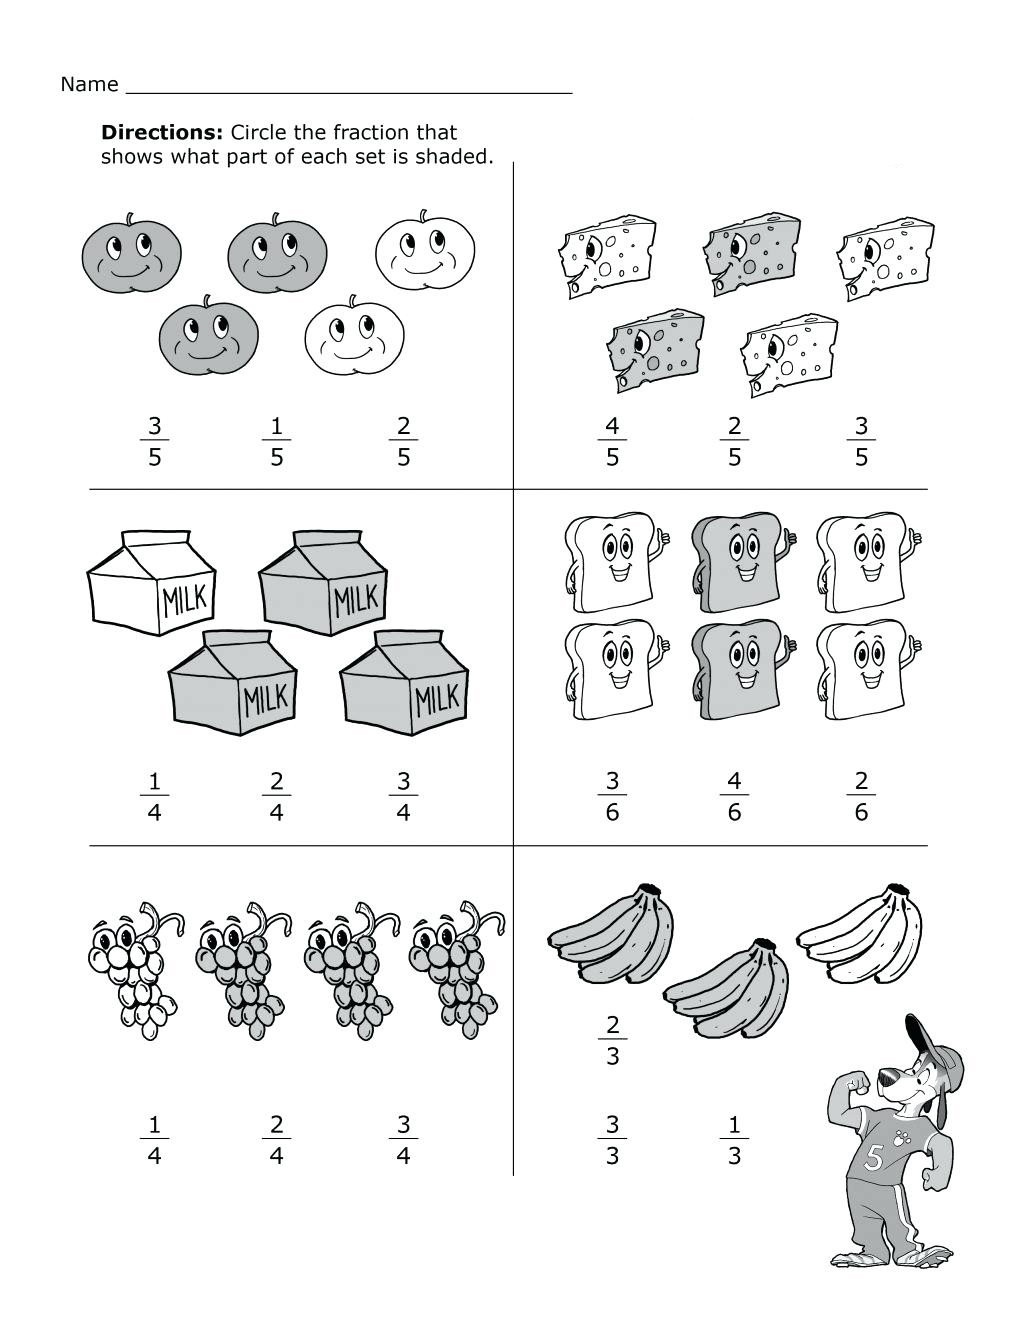 Fractions Worksheets 2nd Grade 2nd Grade Math Worksheets Best Coloring Pages for Kids